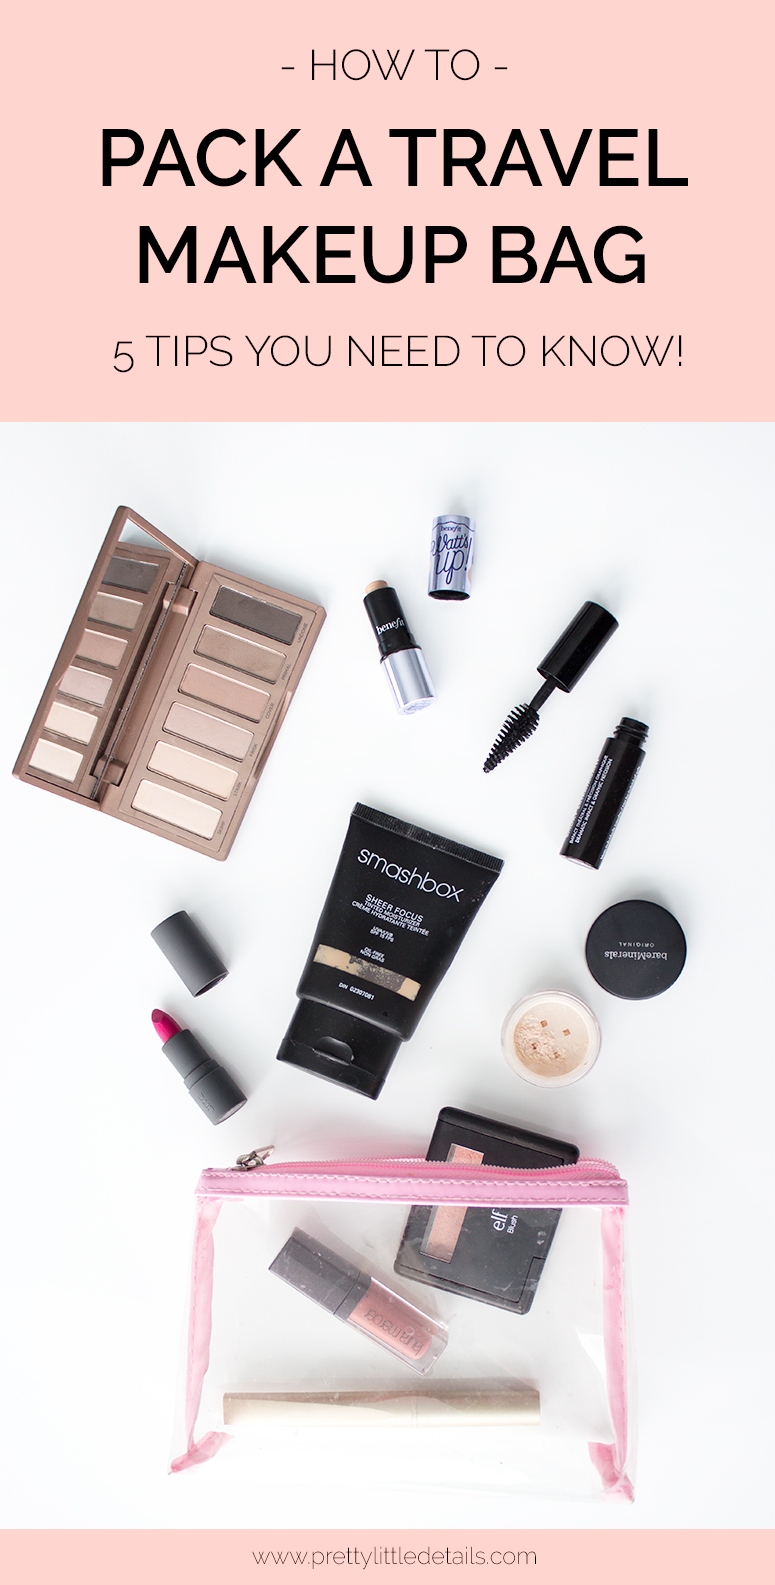 How to pack a travel makeup bag.  5 tips you need to know!